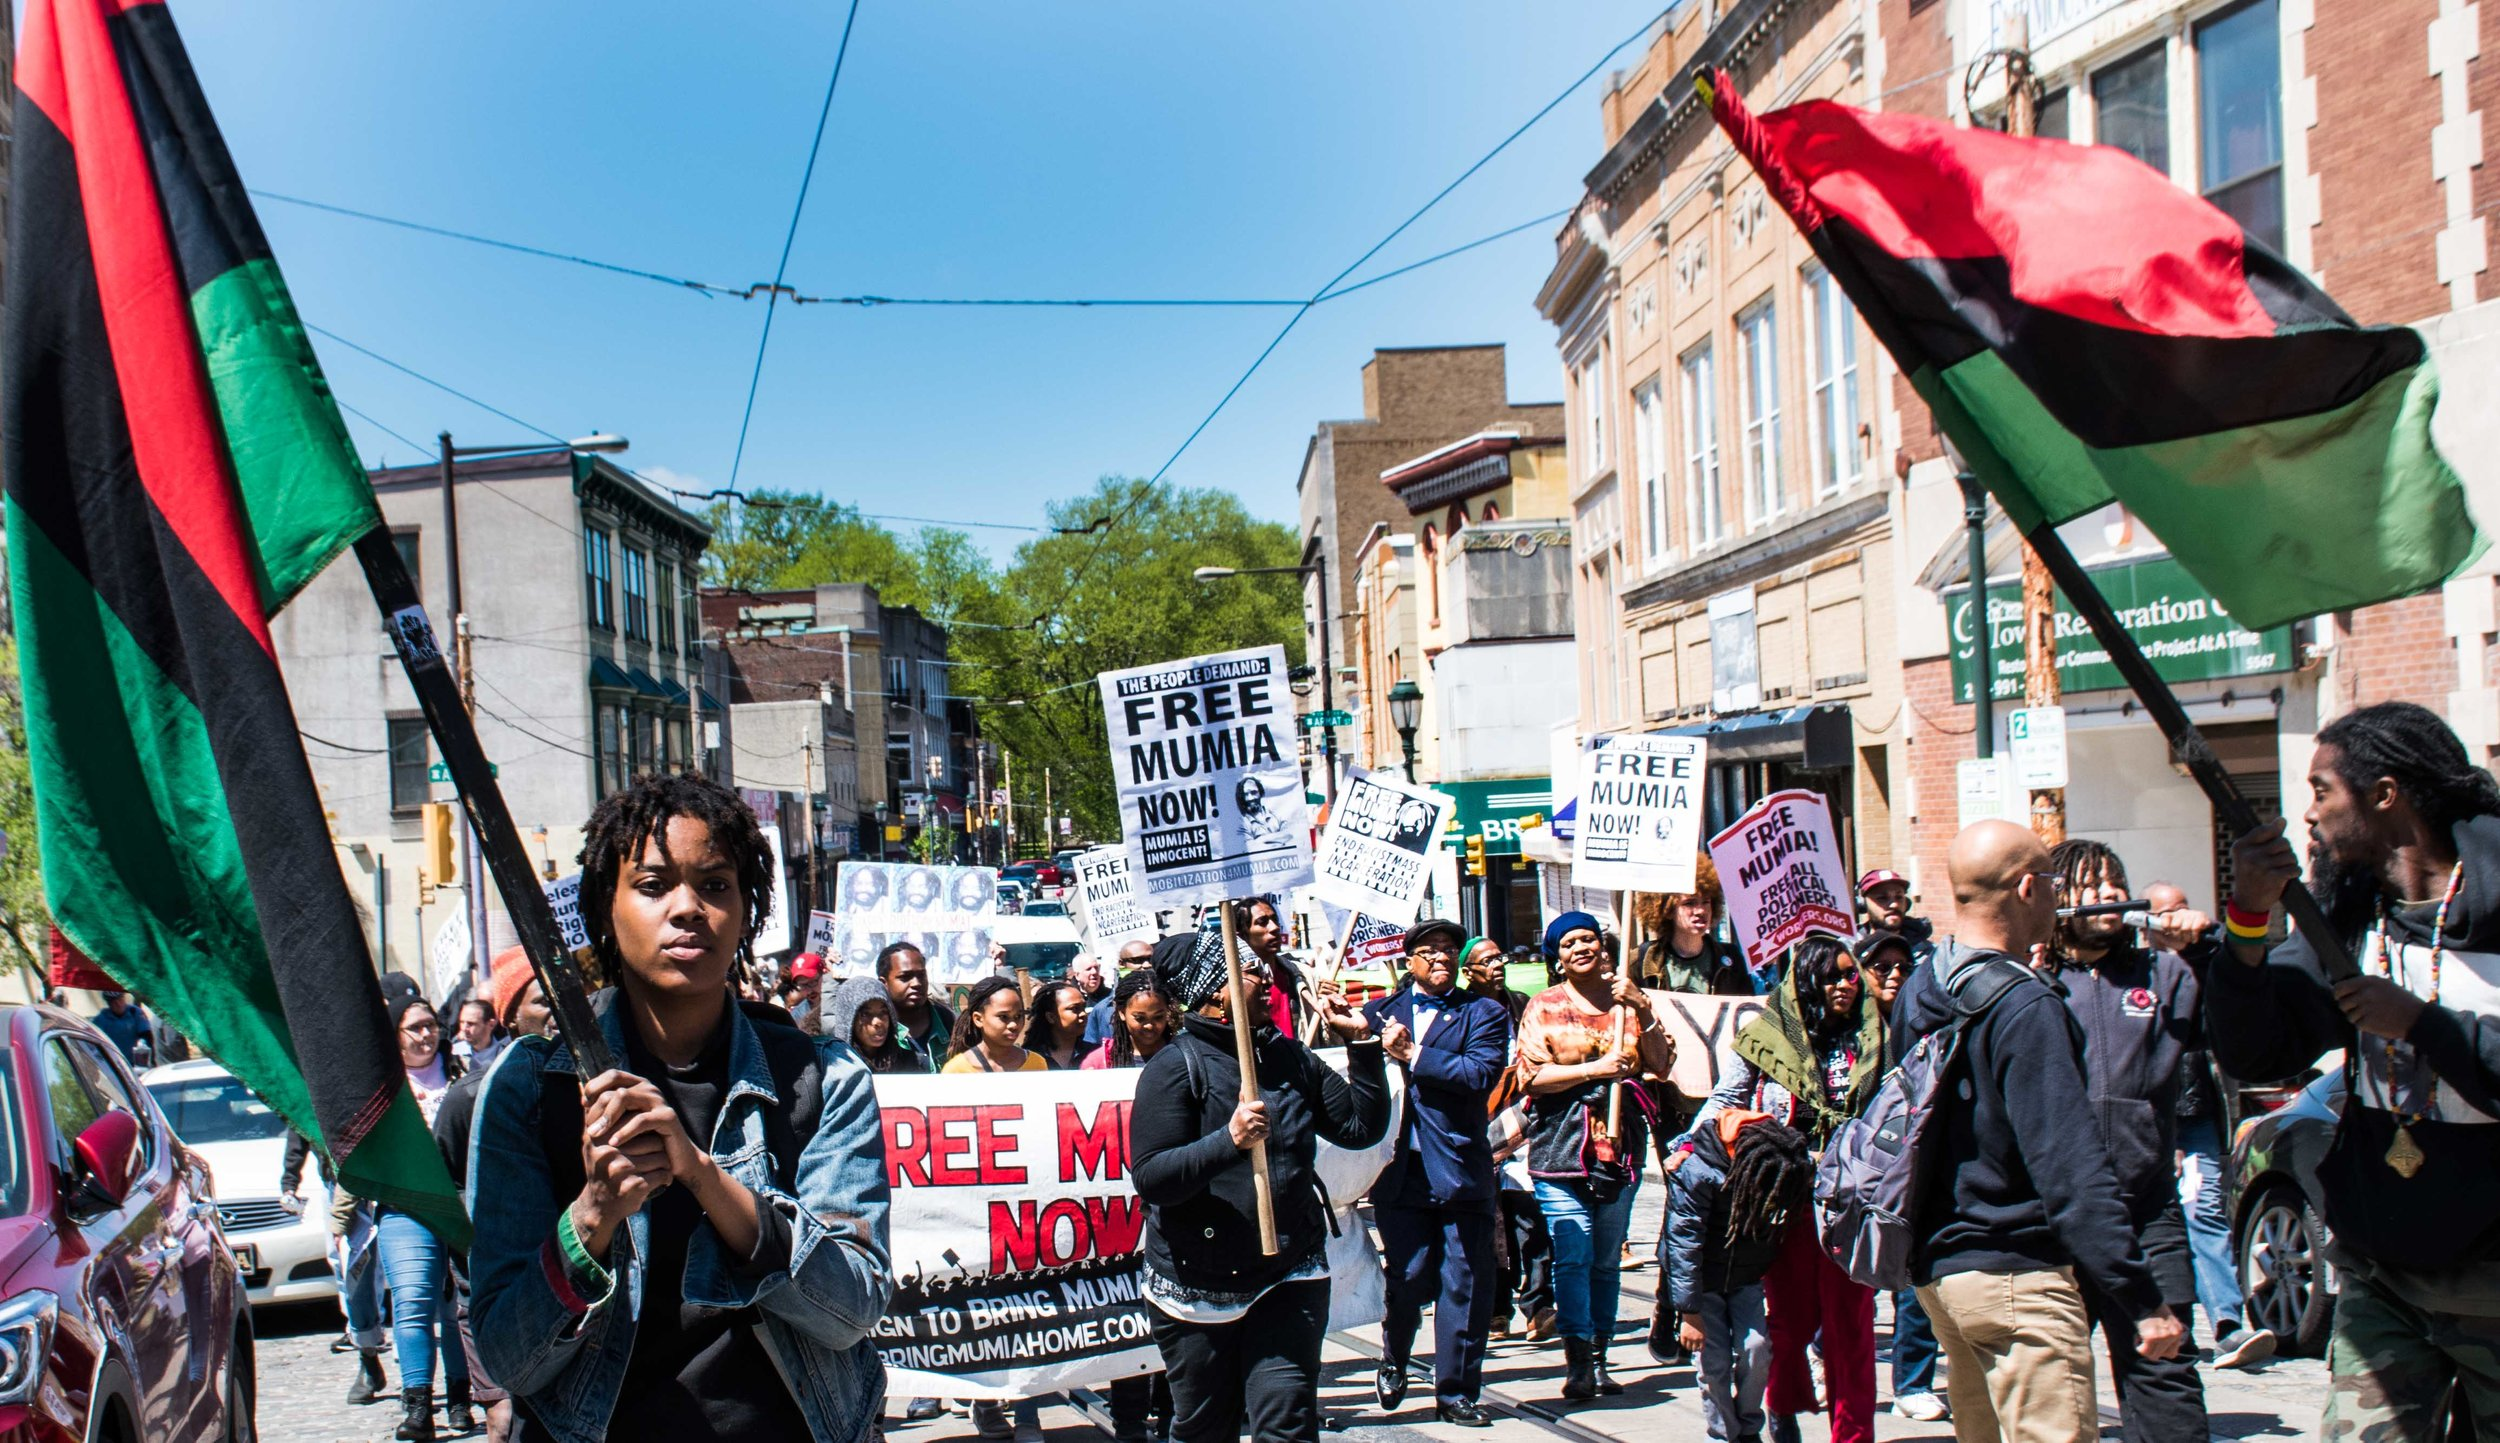 """Brick by Brick, wall by wall, we're going to free Mumia Abu-Jamal"" the chant on Germantown Ave April 27.  Photo credit - Joe Piette"